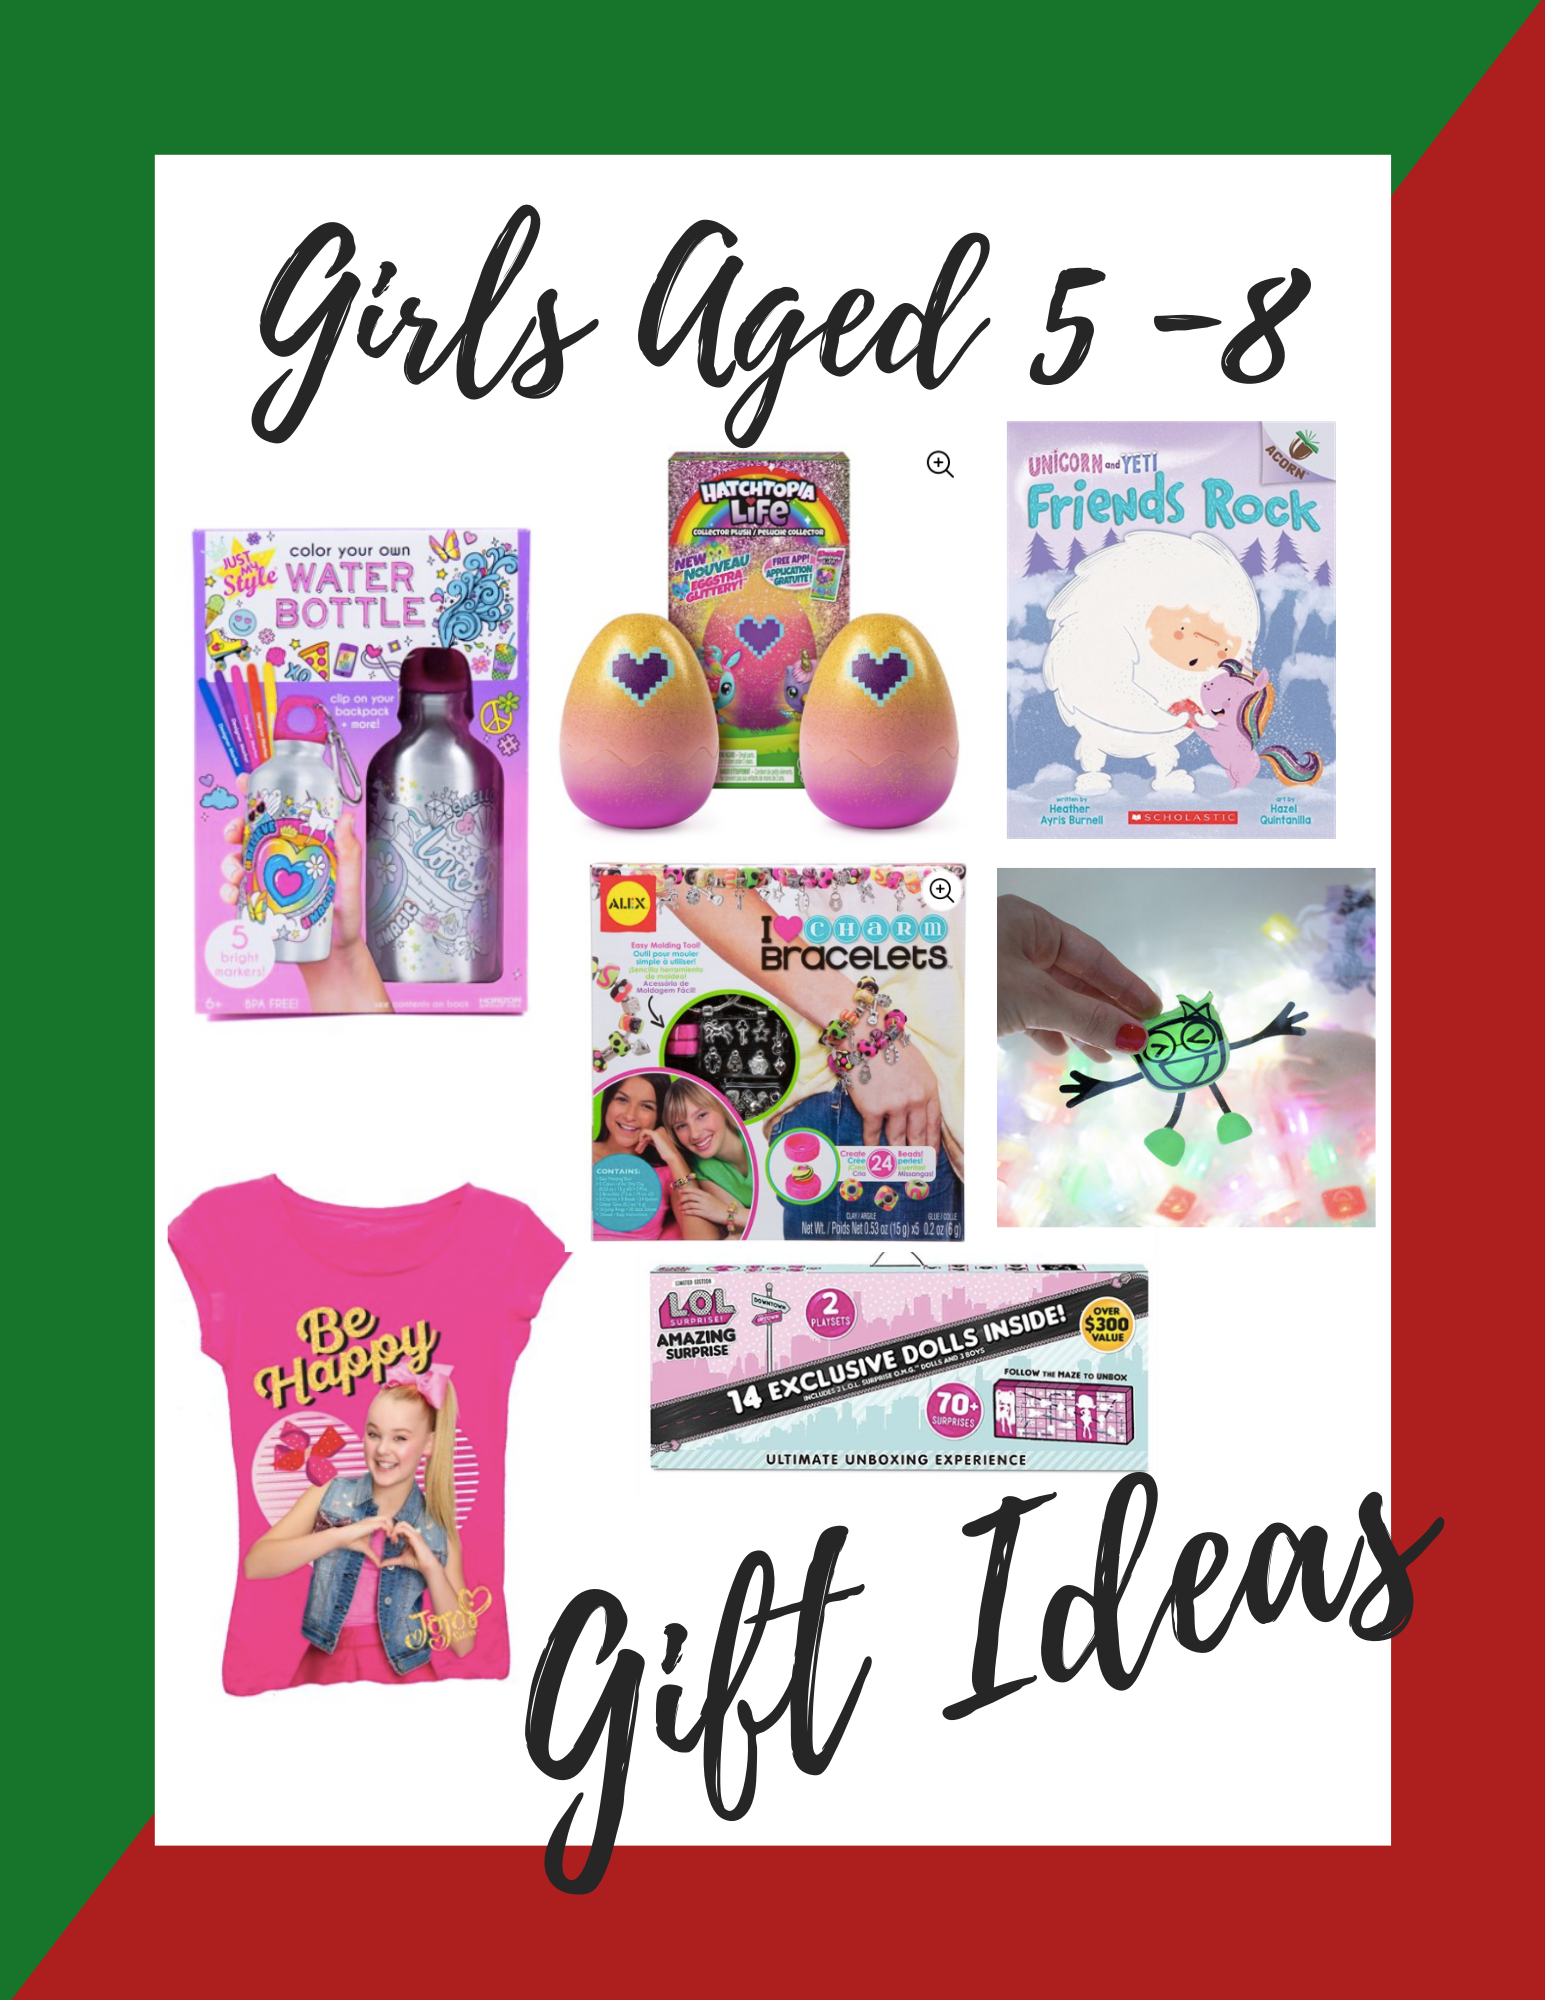 Gifts for Girls Age 5 8 in 2020 Kids gift guide, Gifts